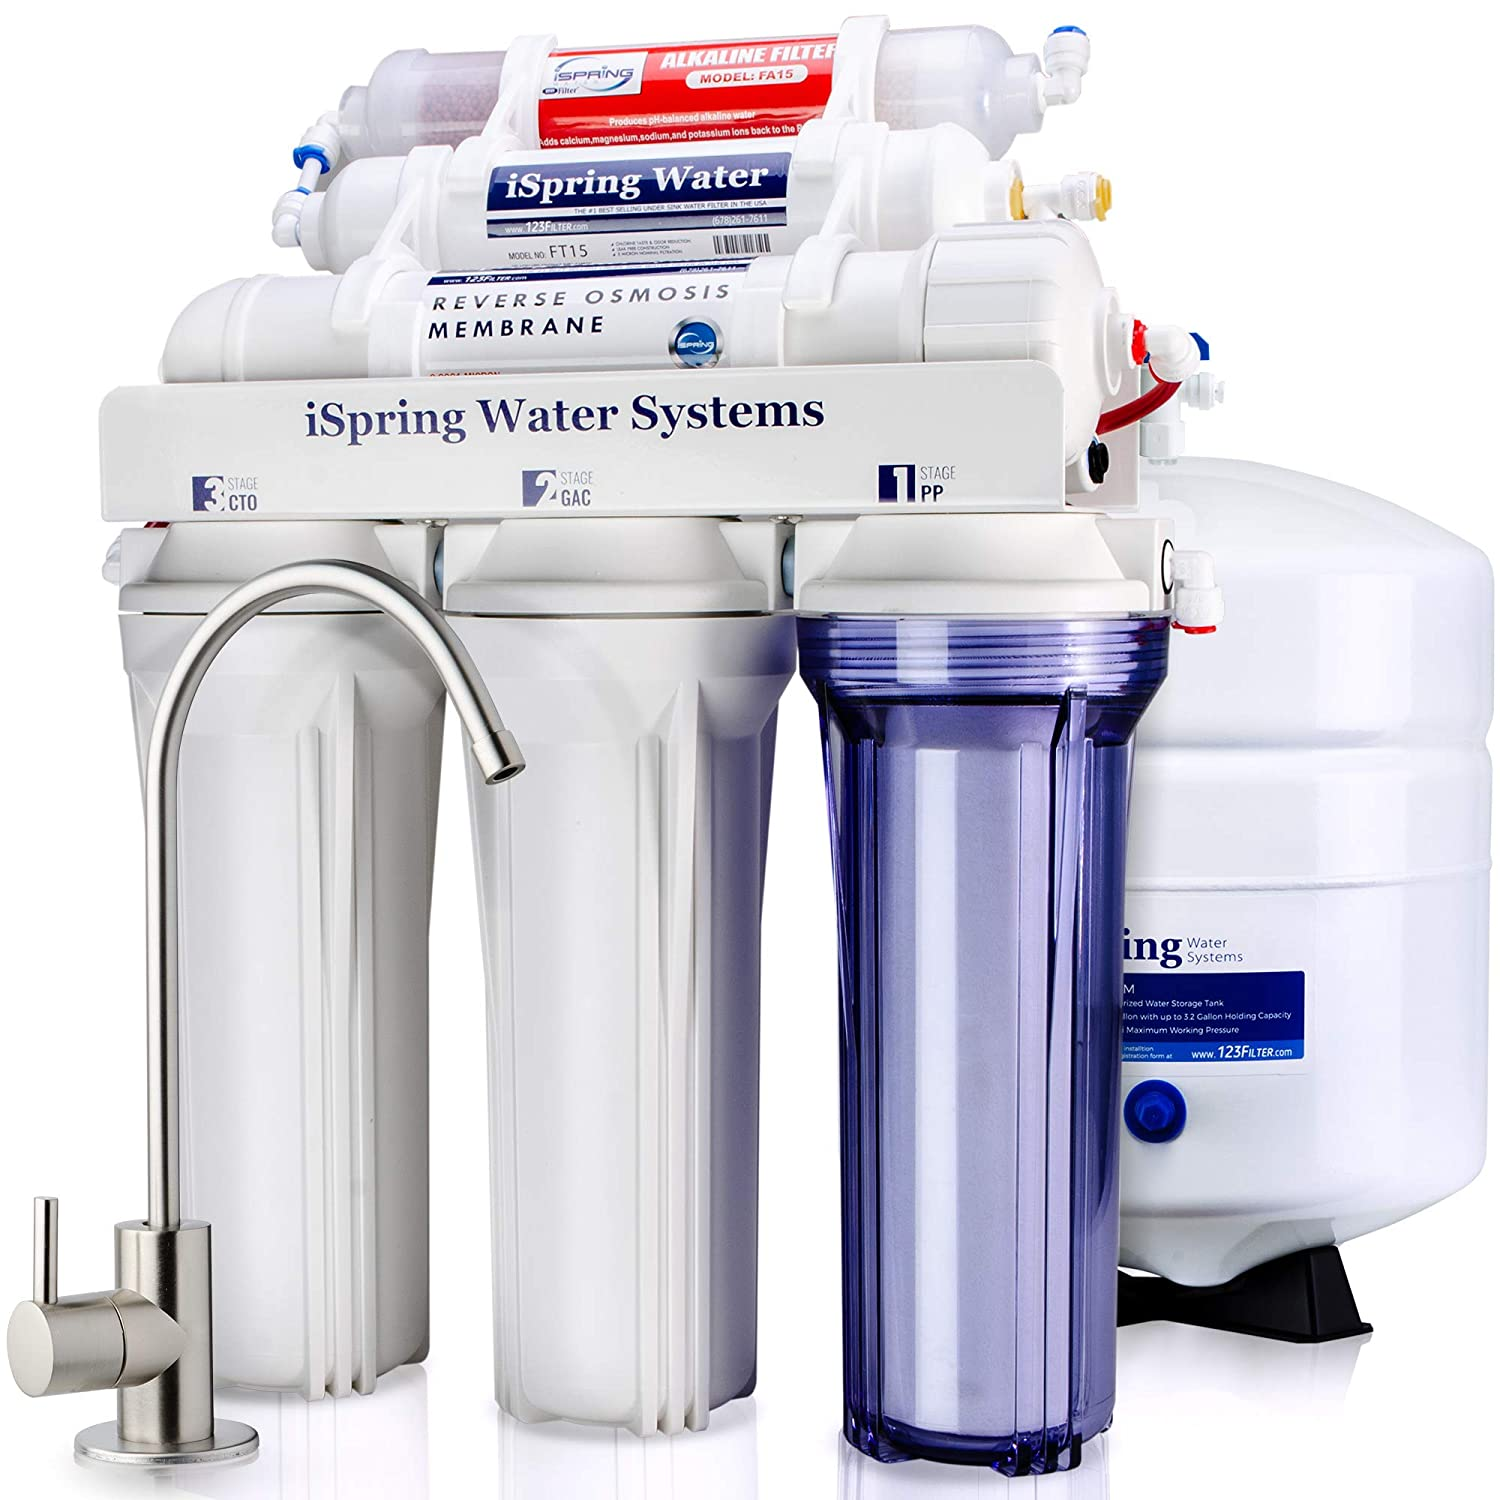 iSpring RCC7AK 6-Stage Under Under Sink Reverse Osmosis Drinking Water Filter System with Alkaline Remineralization